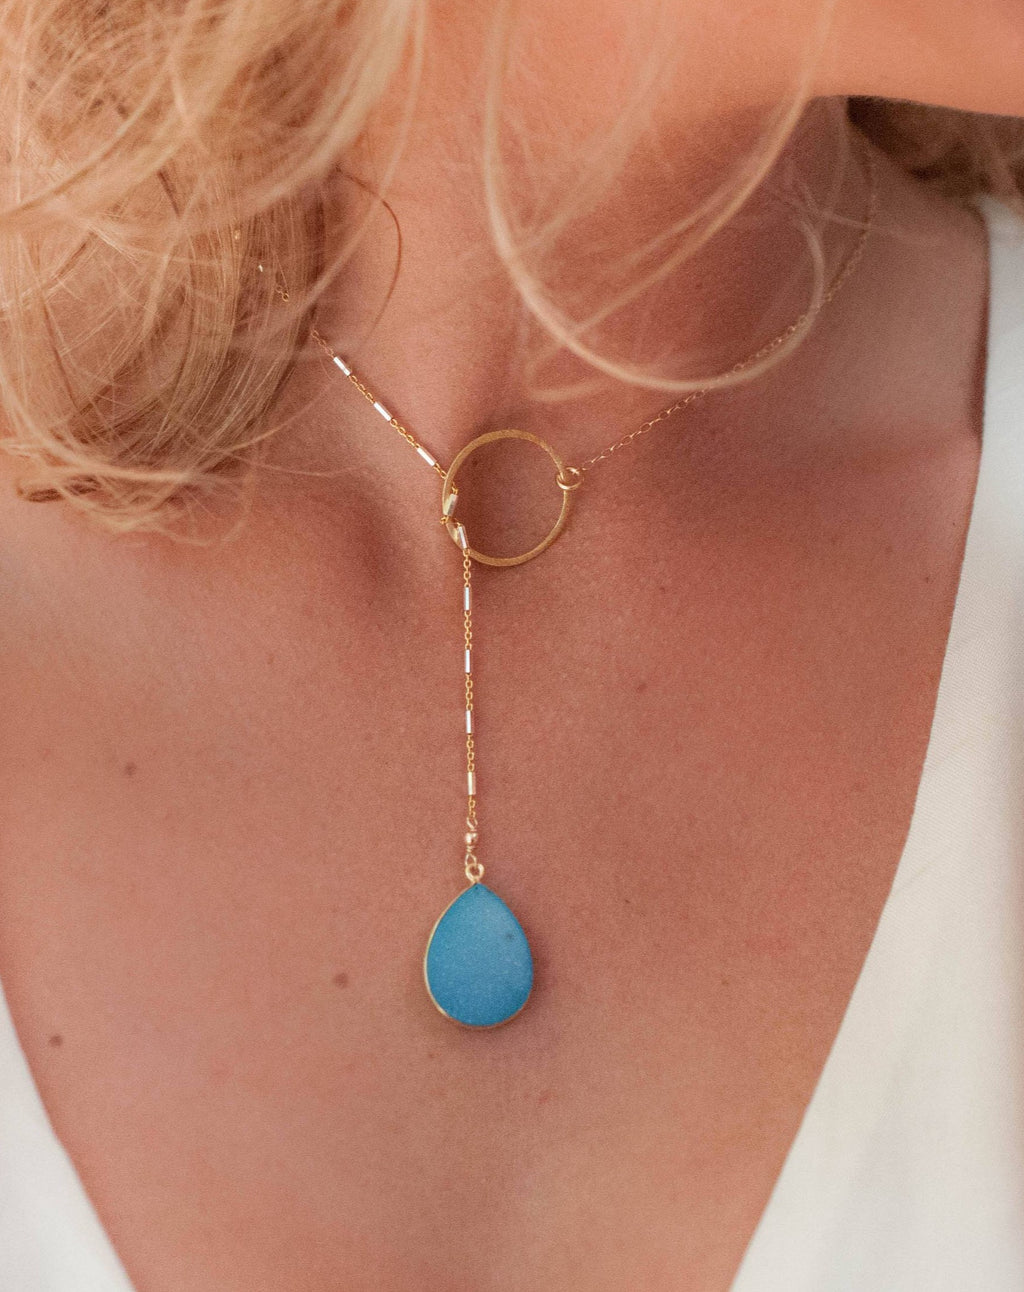 Blue Druzy * Tear Drop * Lariat Necklace * Gold * Silver * Mix Metals * Gemstone * Statement * Bycila *Bridesmaid *BJN001-21N